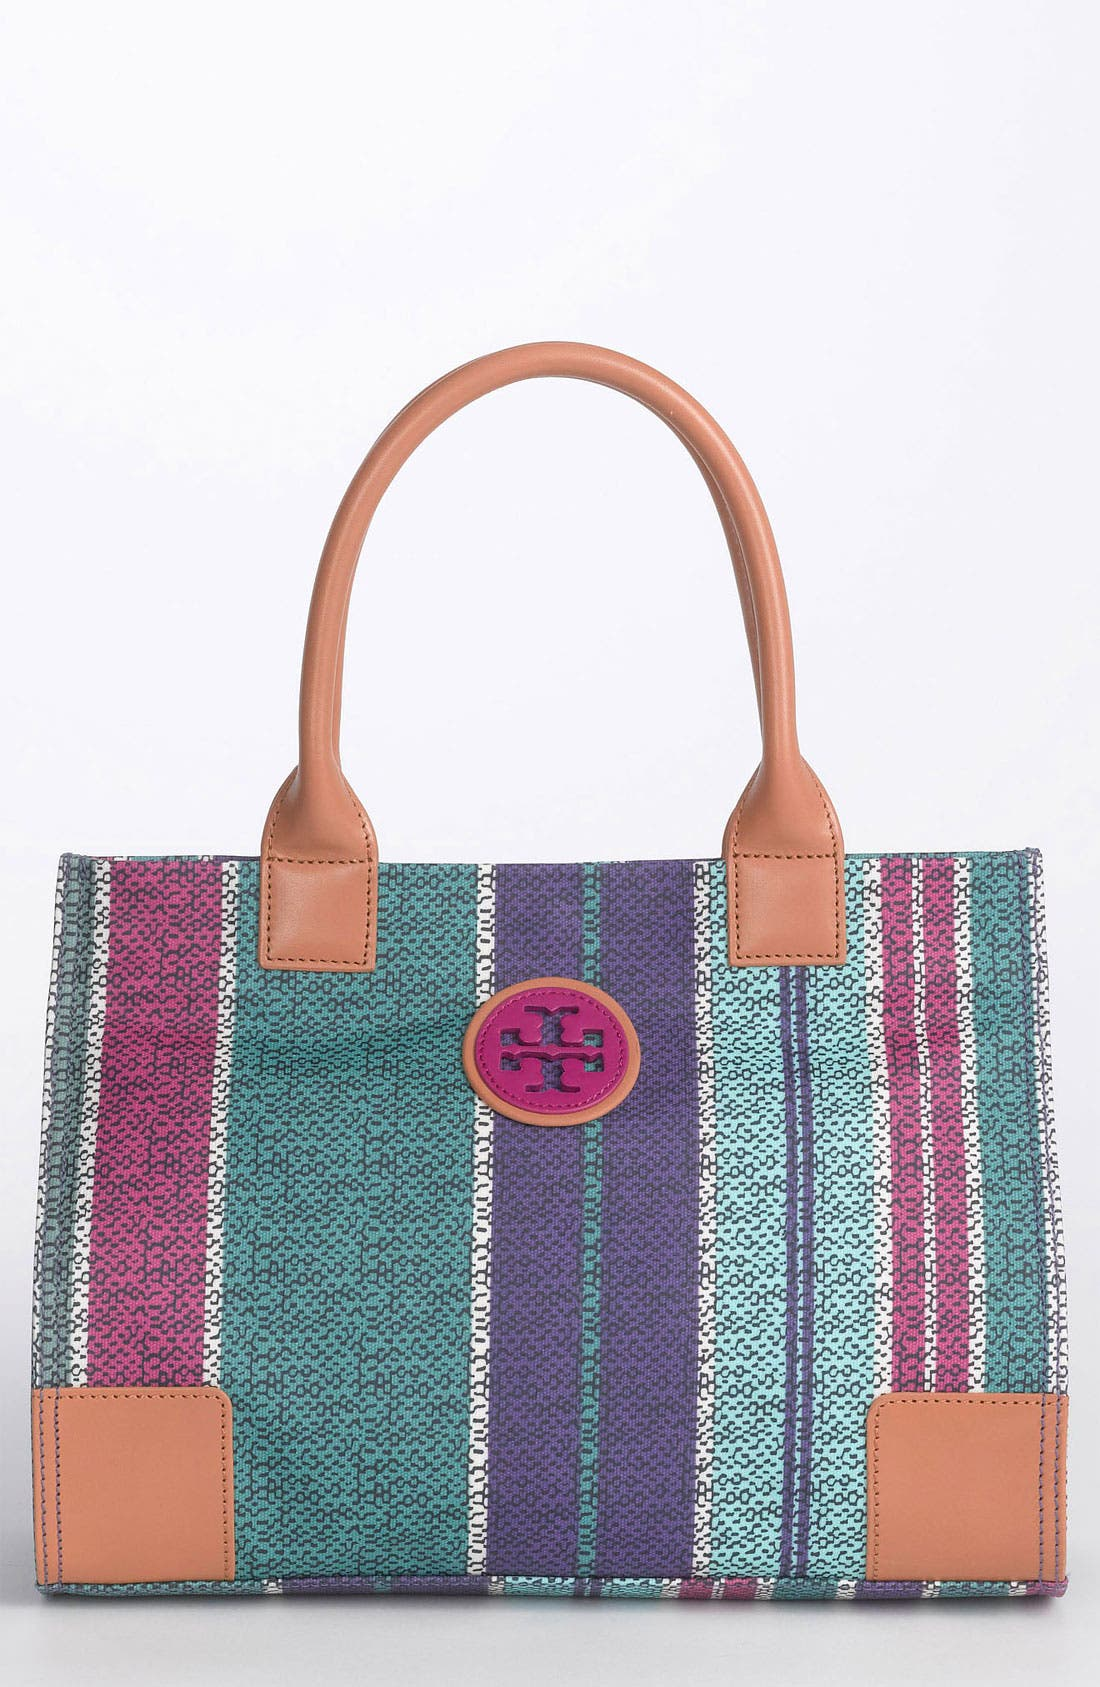 Main Image - Tory Burch 'Mini' Coated Canvas Tote